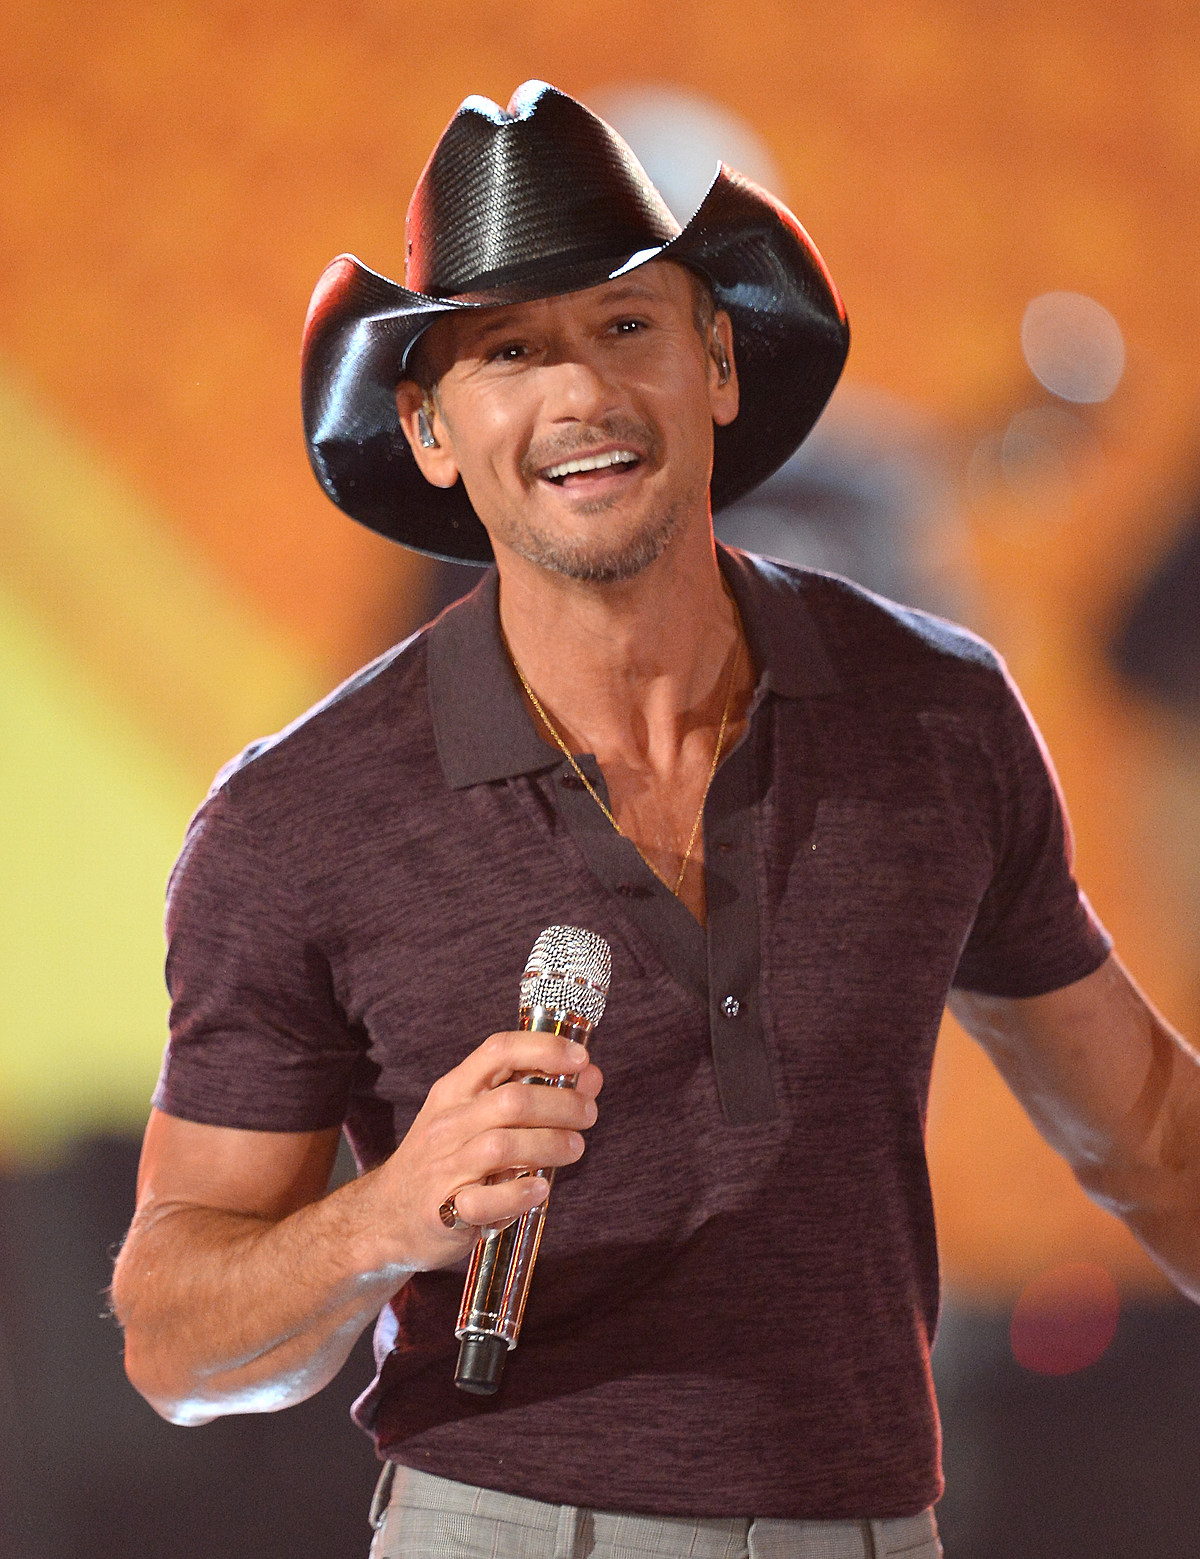 10 Things You Didnt Know About Tim McGraw: No. 10